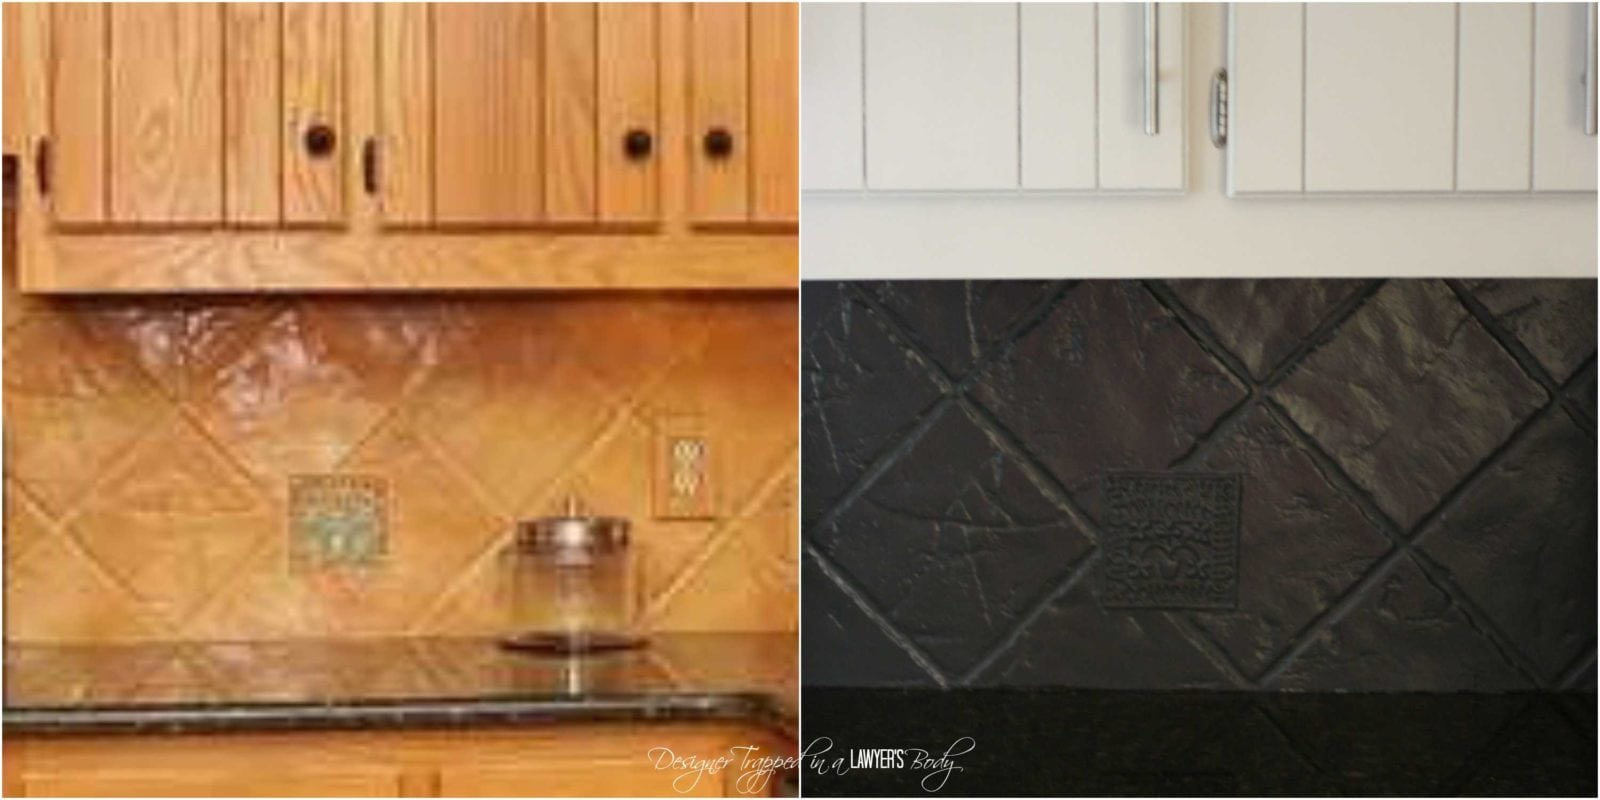 Kitchen Tiles And Backsplashes how to paint a tile backsplash: my budget solution! | designer trapped